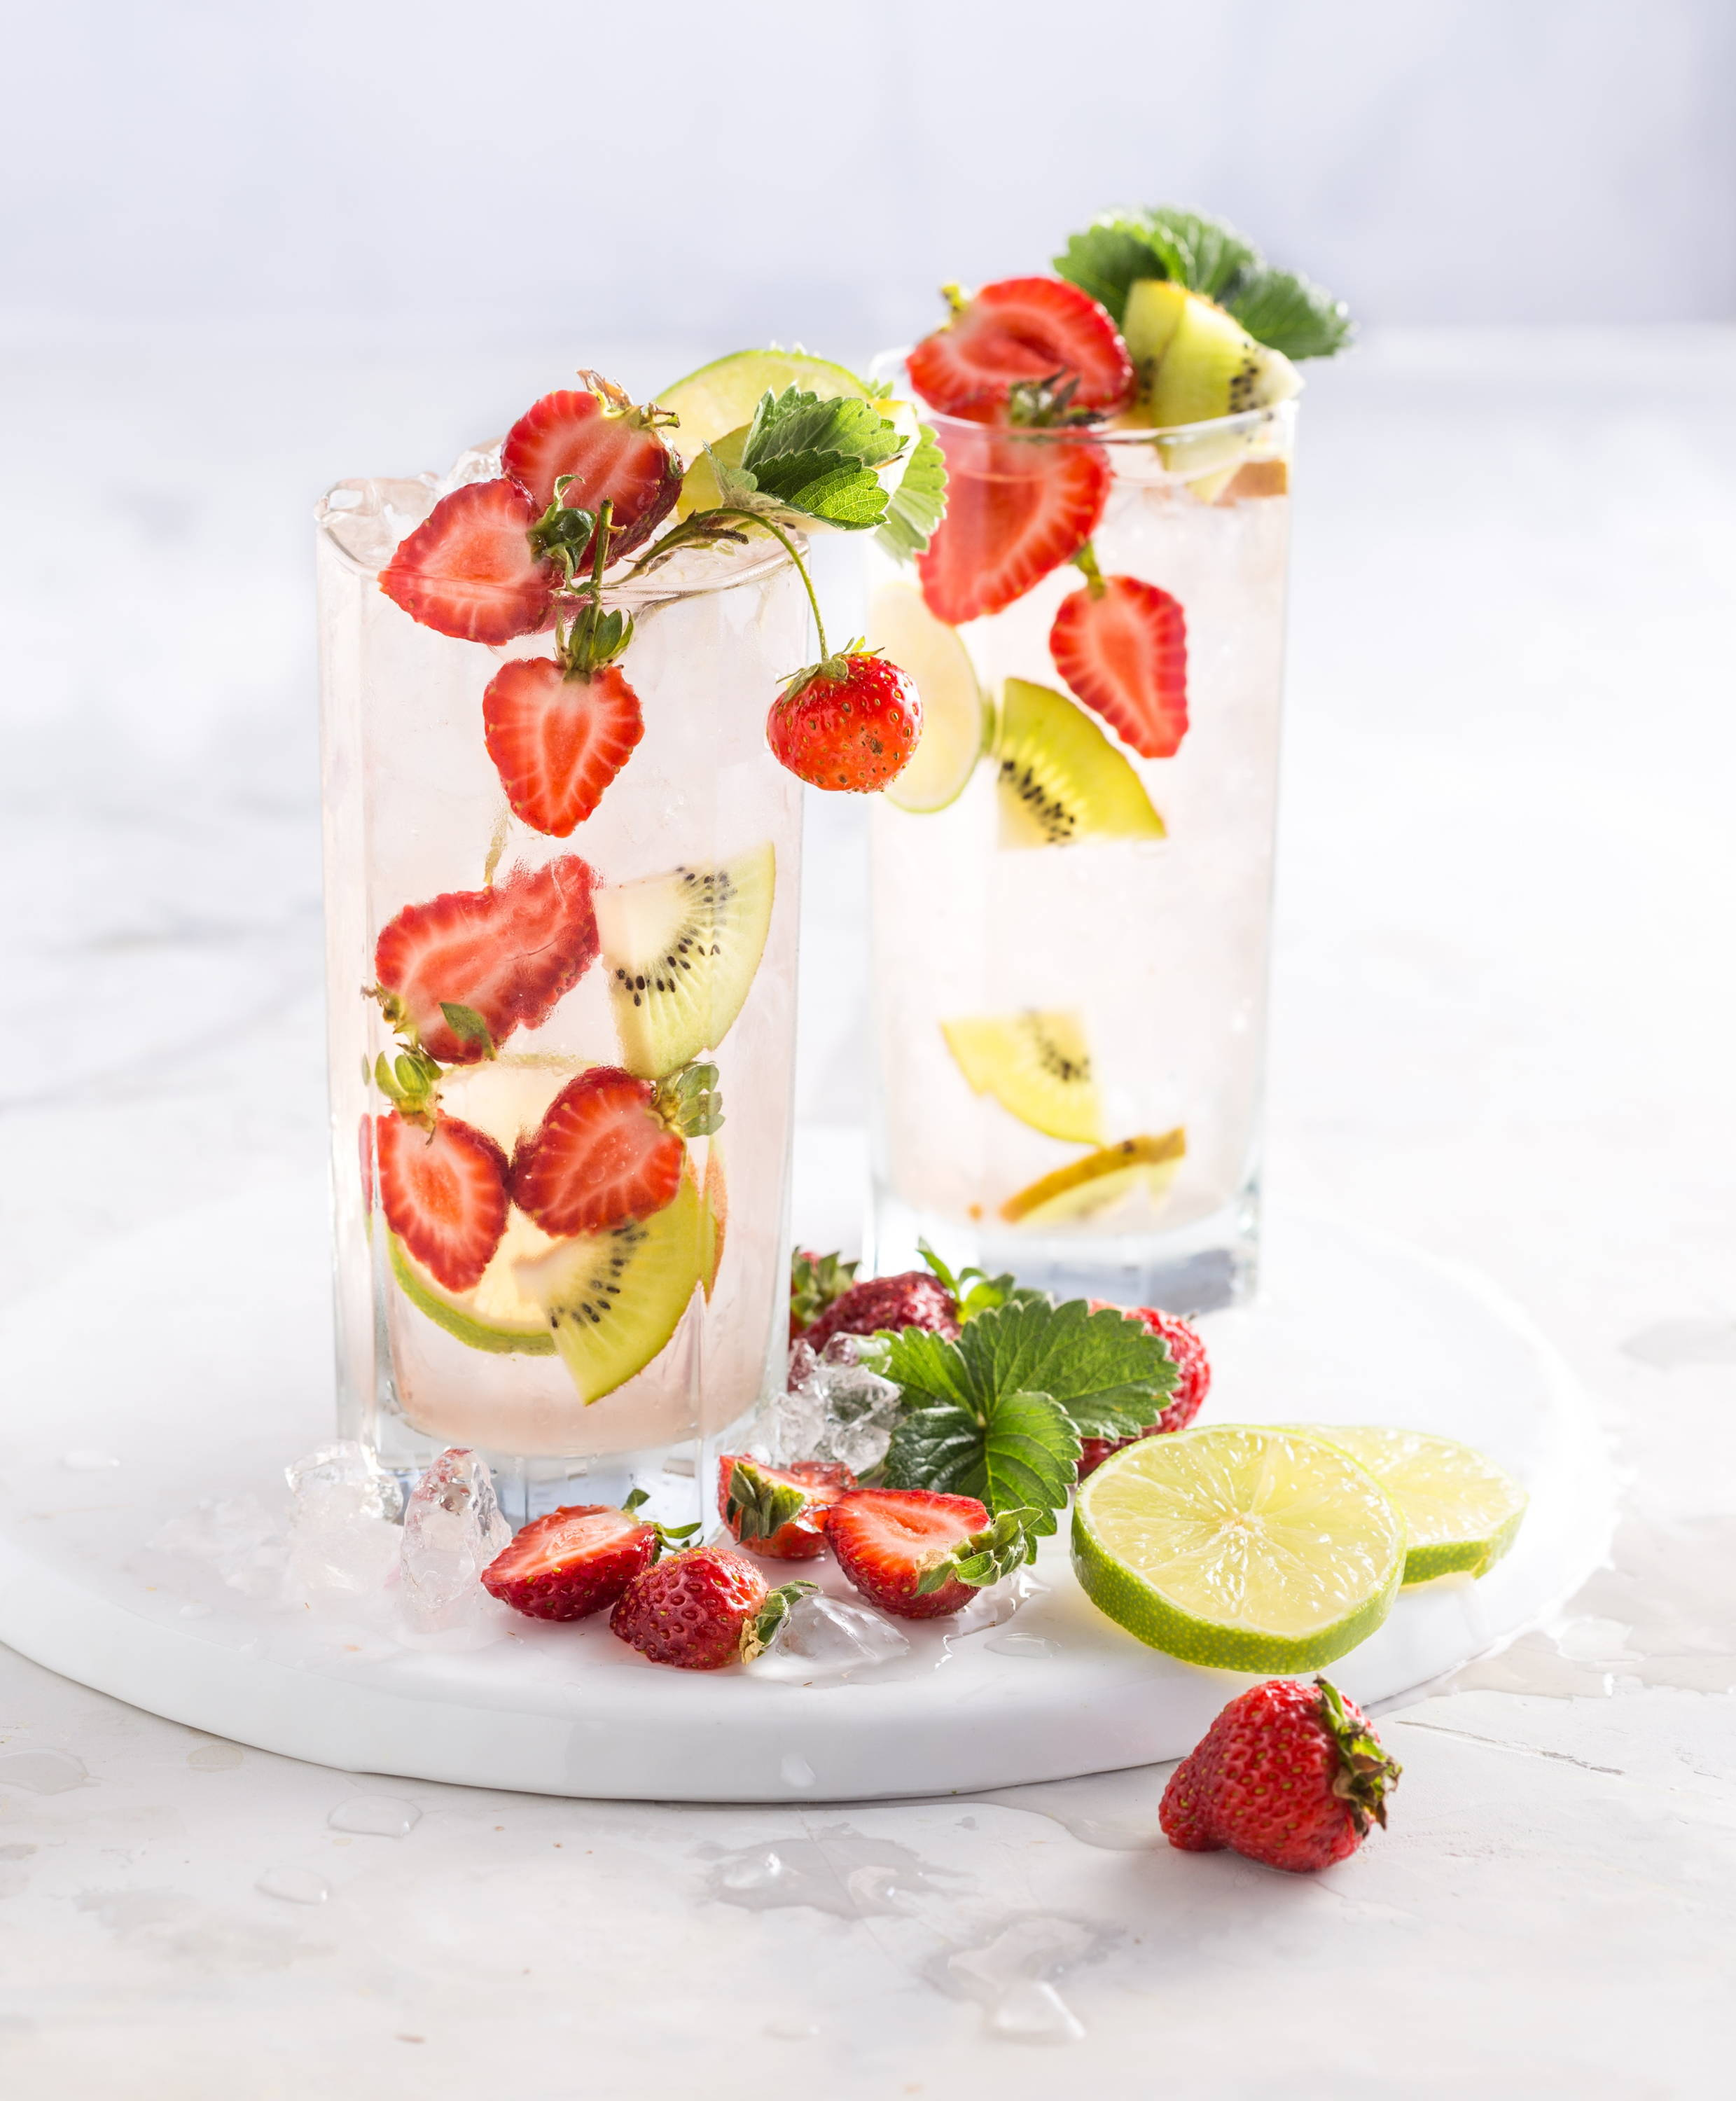 A glass of alkaline water infused with kiwis and strawberries